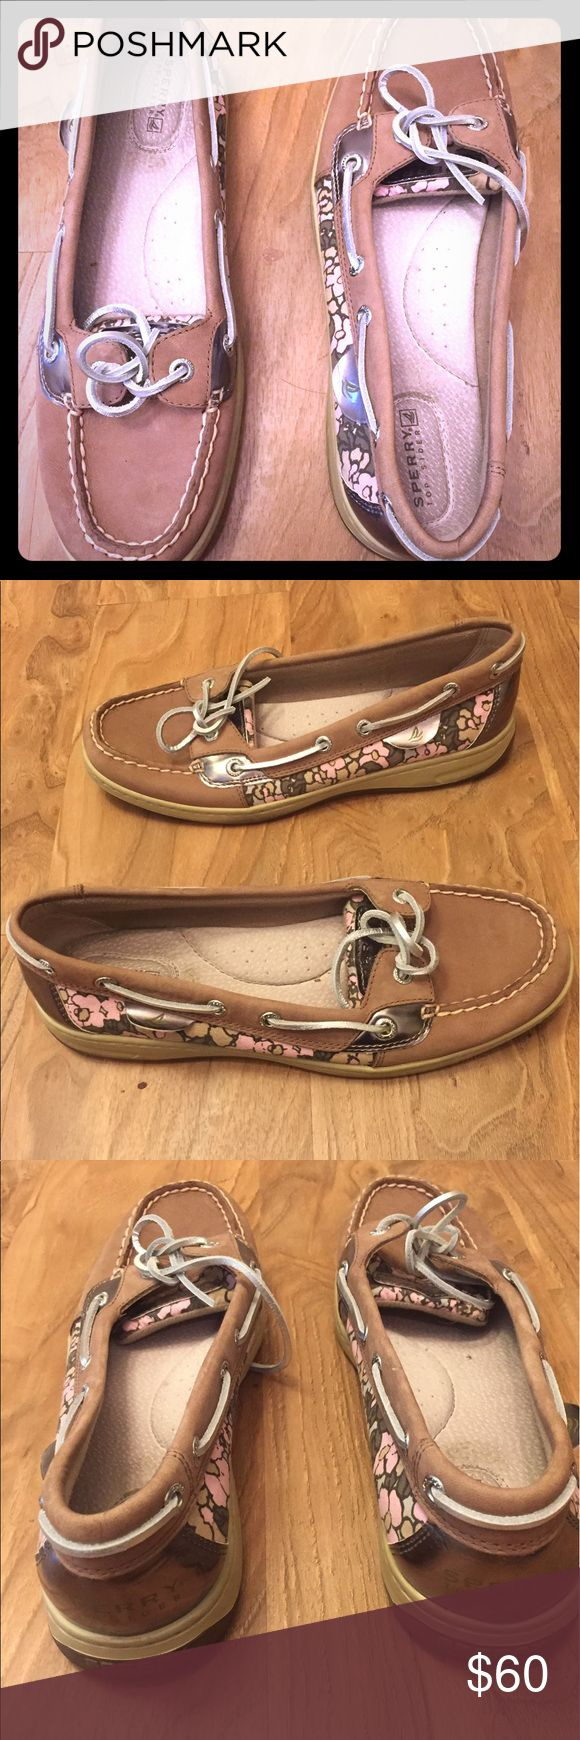 SPERRY Top-Sider Flats These are in great condition. Only wear is on the inside around the heel area and on the bottom of the shoe. Super cute design on the side. We are a pet free/smoke free house Sperry Top-Sider Shoes Flats & Loafers